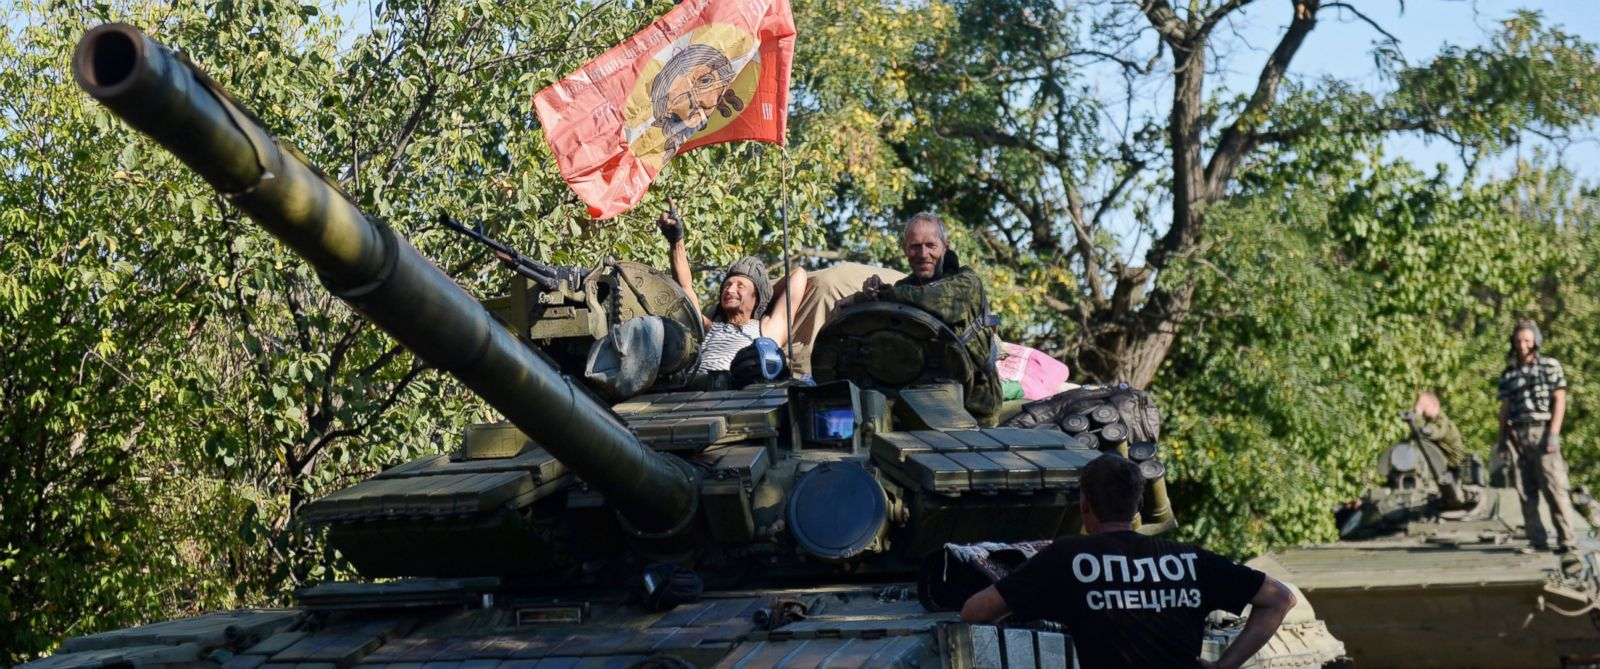 PHOTO: Pro-Russian fighters sit on top of a tank in Starobesheve, Ukraine on Aug. 31, 2014.